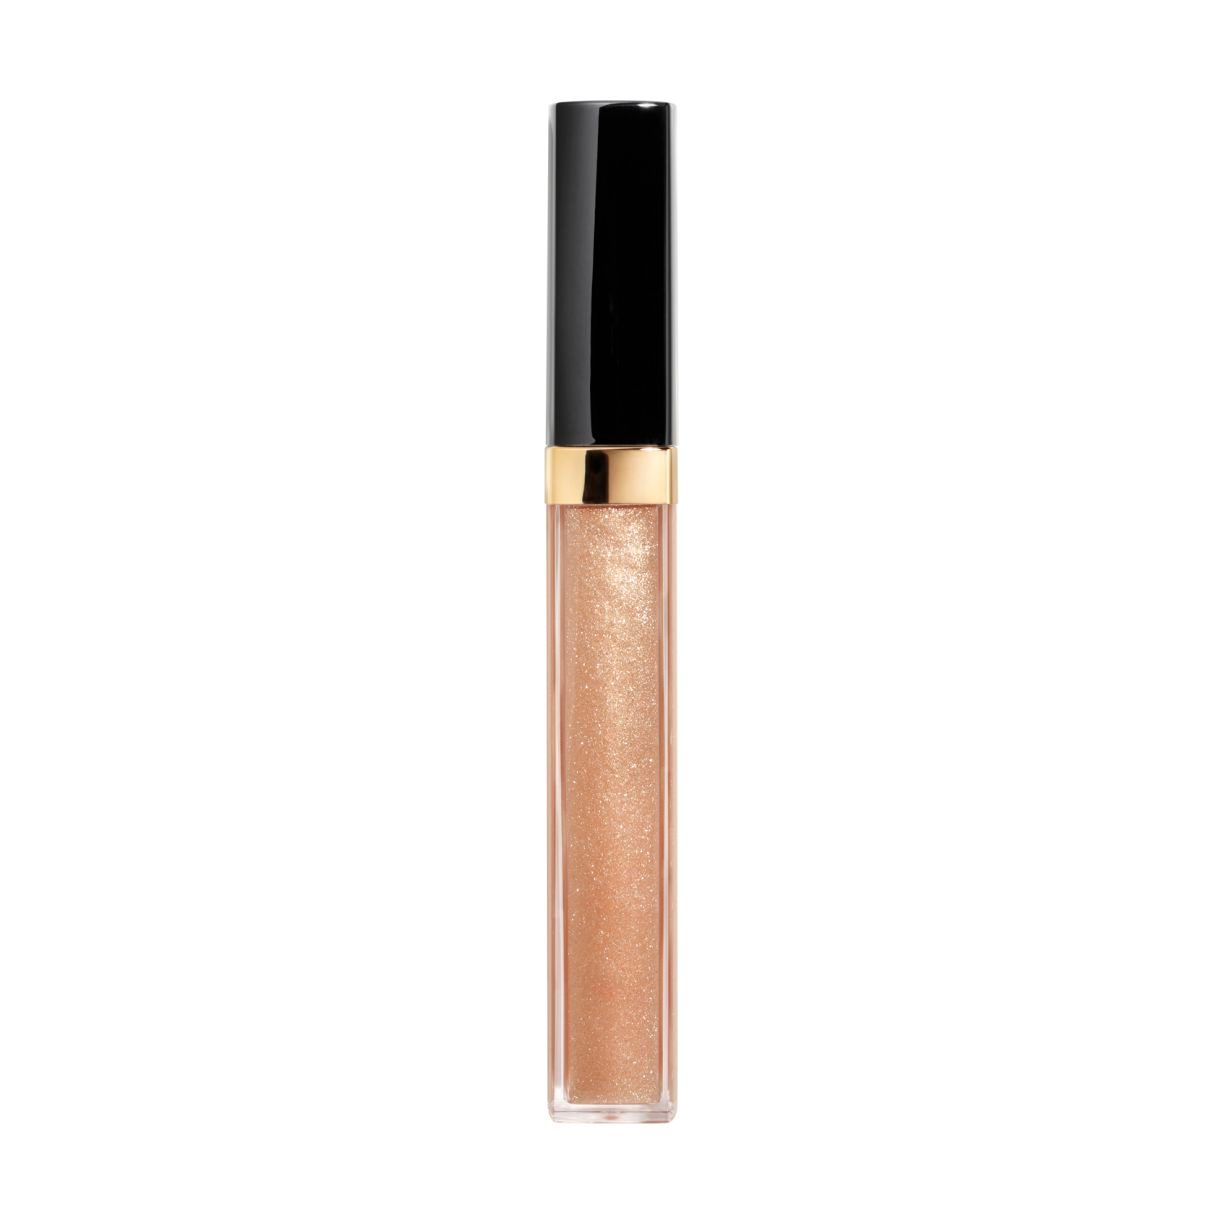 ROUGE COCO GLOSS MOISTURISING GLOSSIMER 712 MELTED HONEY 5.5G